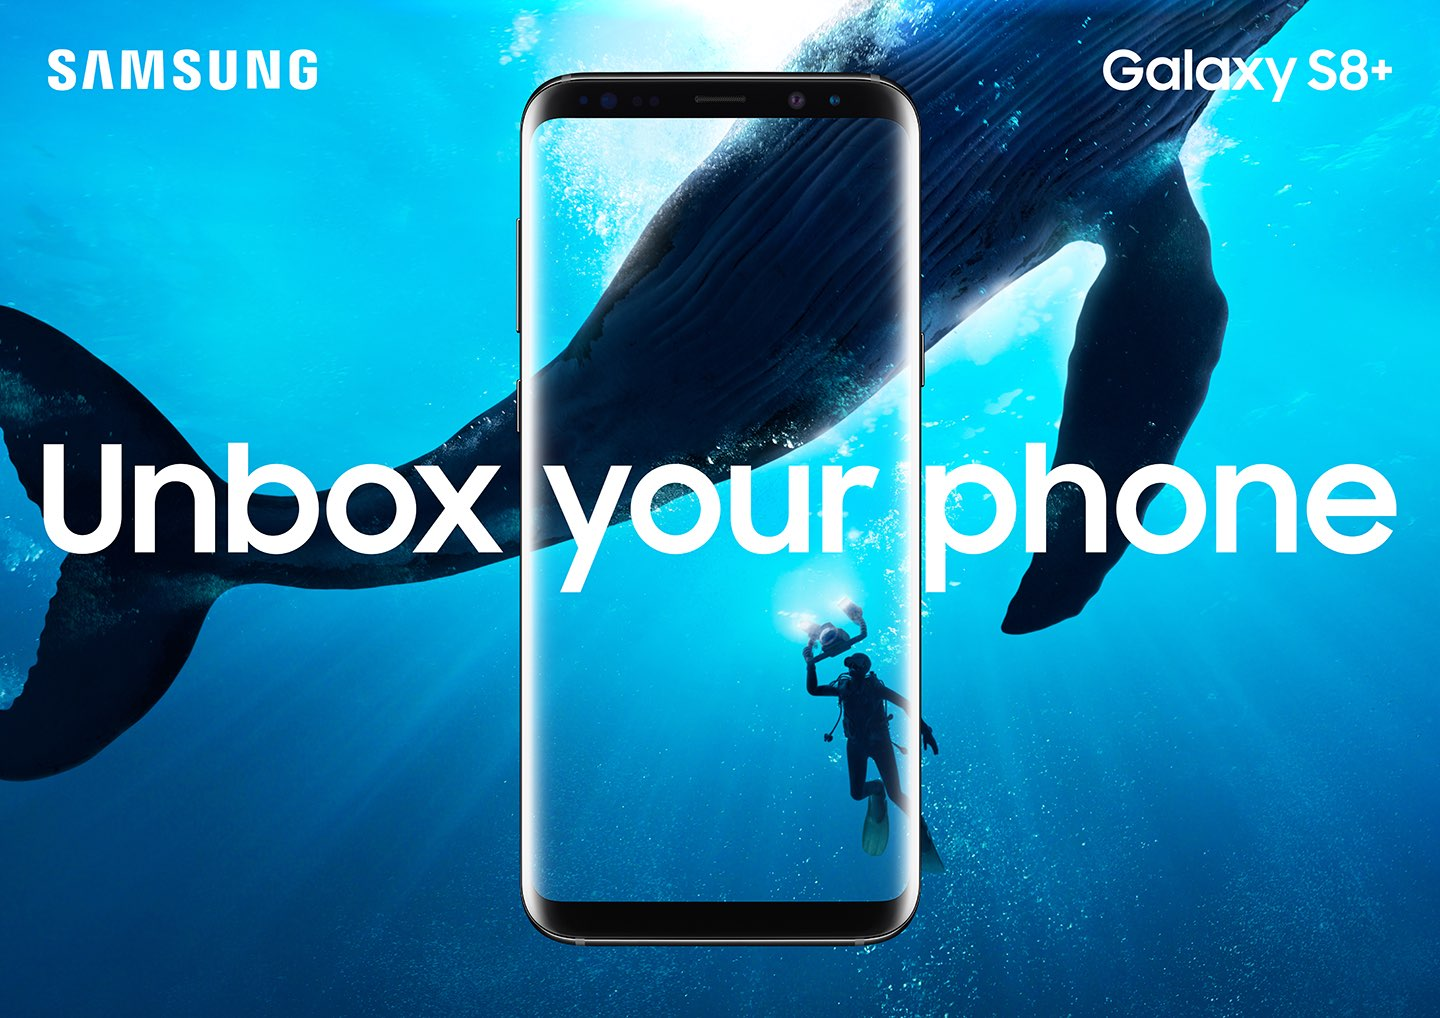 Some Galaxy S8 owners complaining about burnt-in pixels